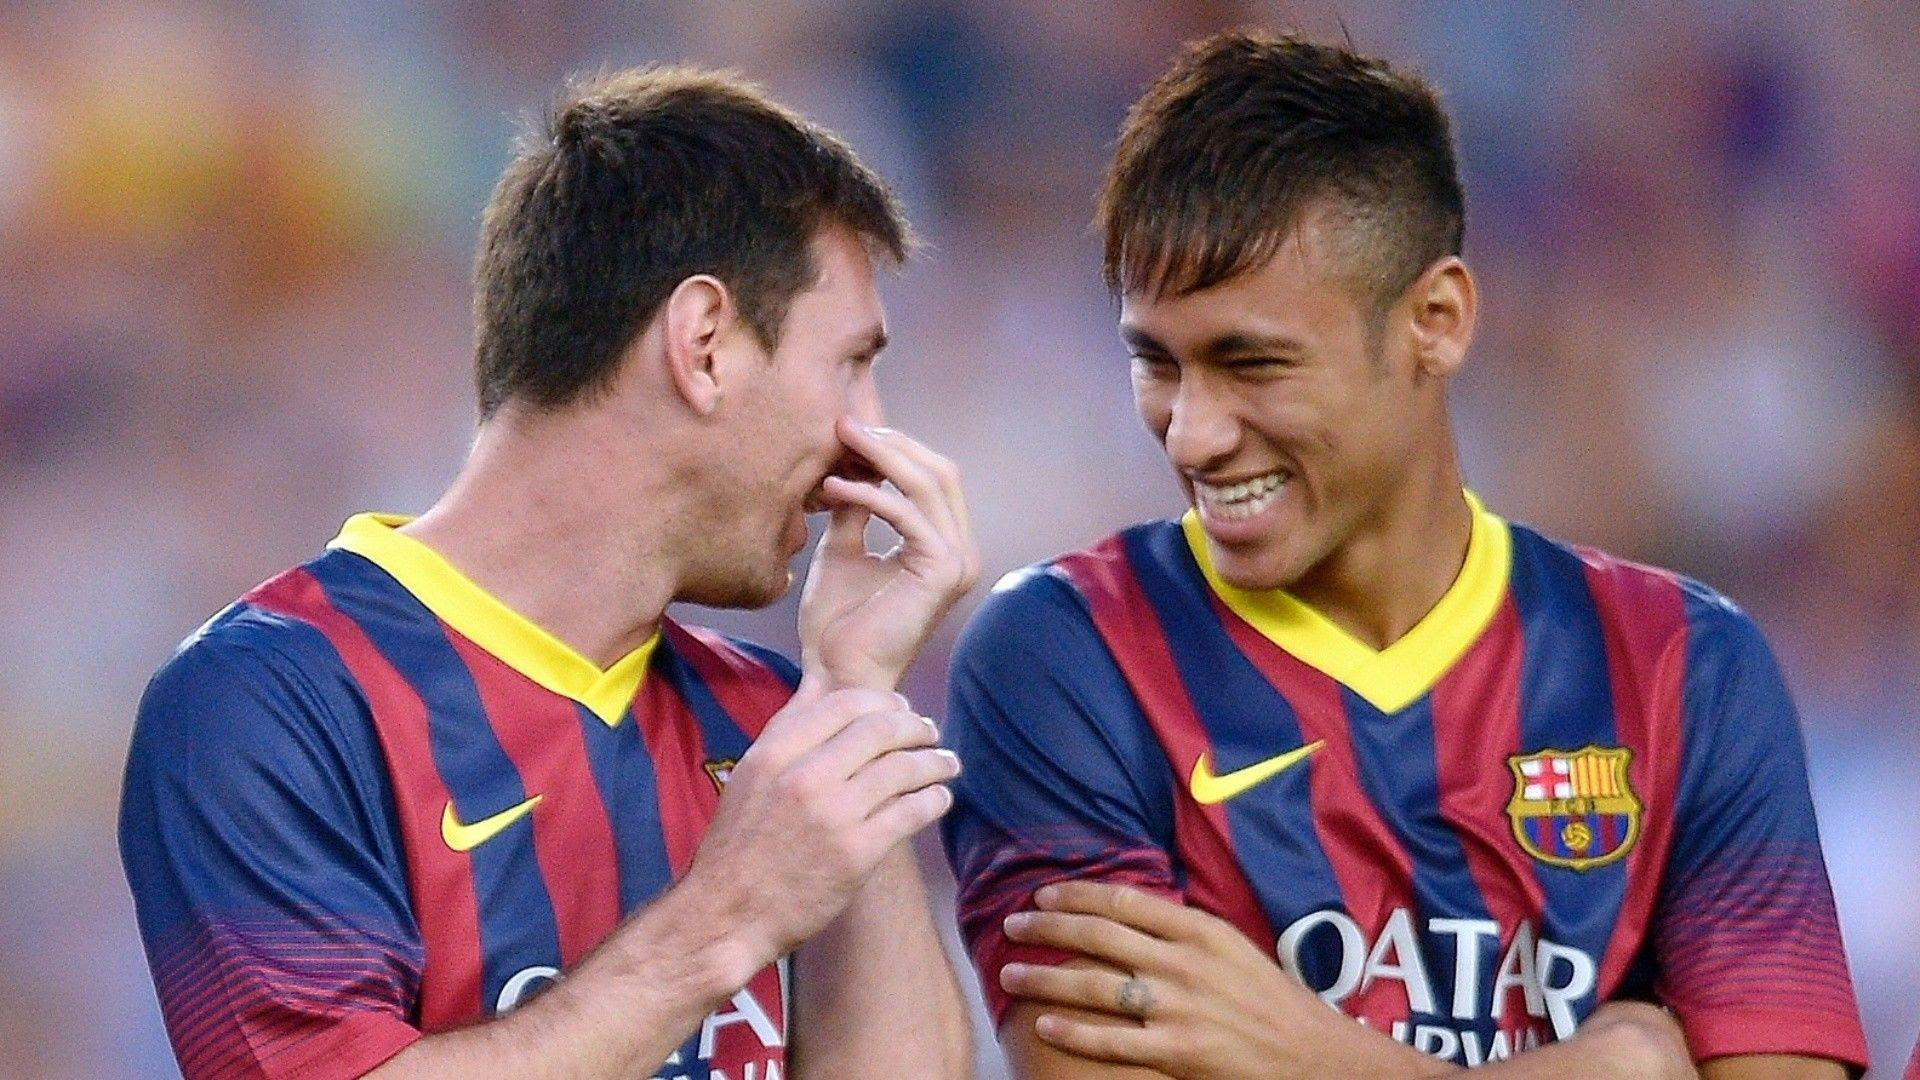 Messi And Neymar Wallpapers - Wallpaper Cave